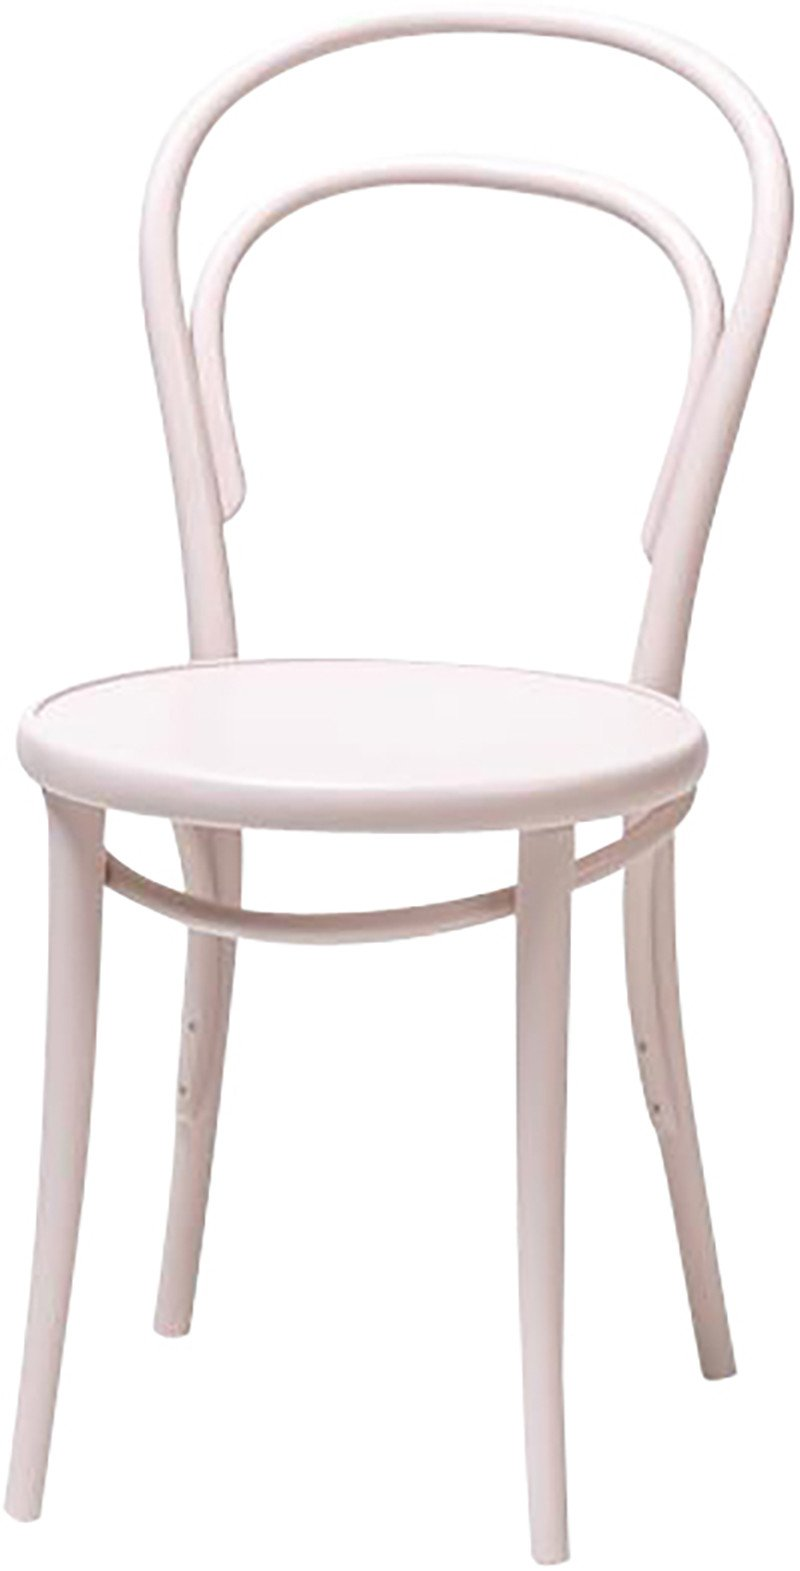 Nude Pink 14 Chair, TON